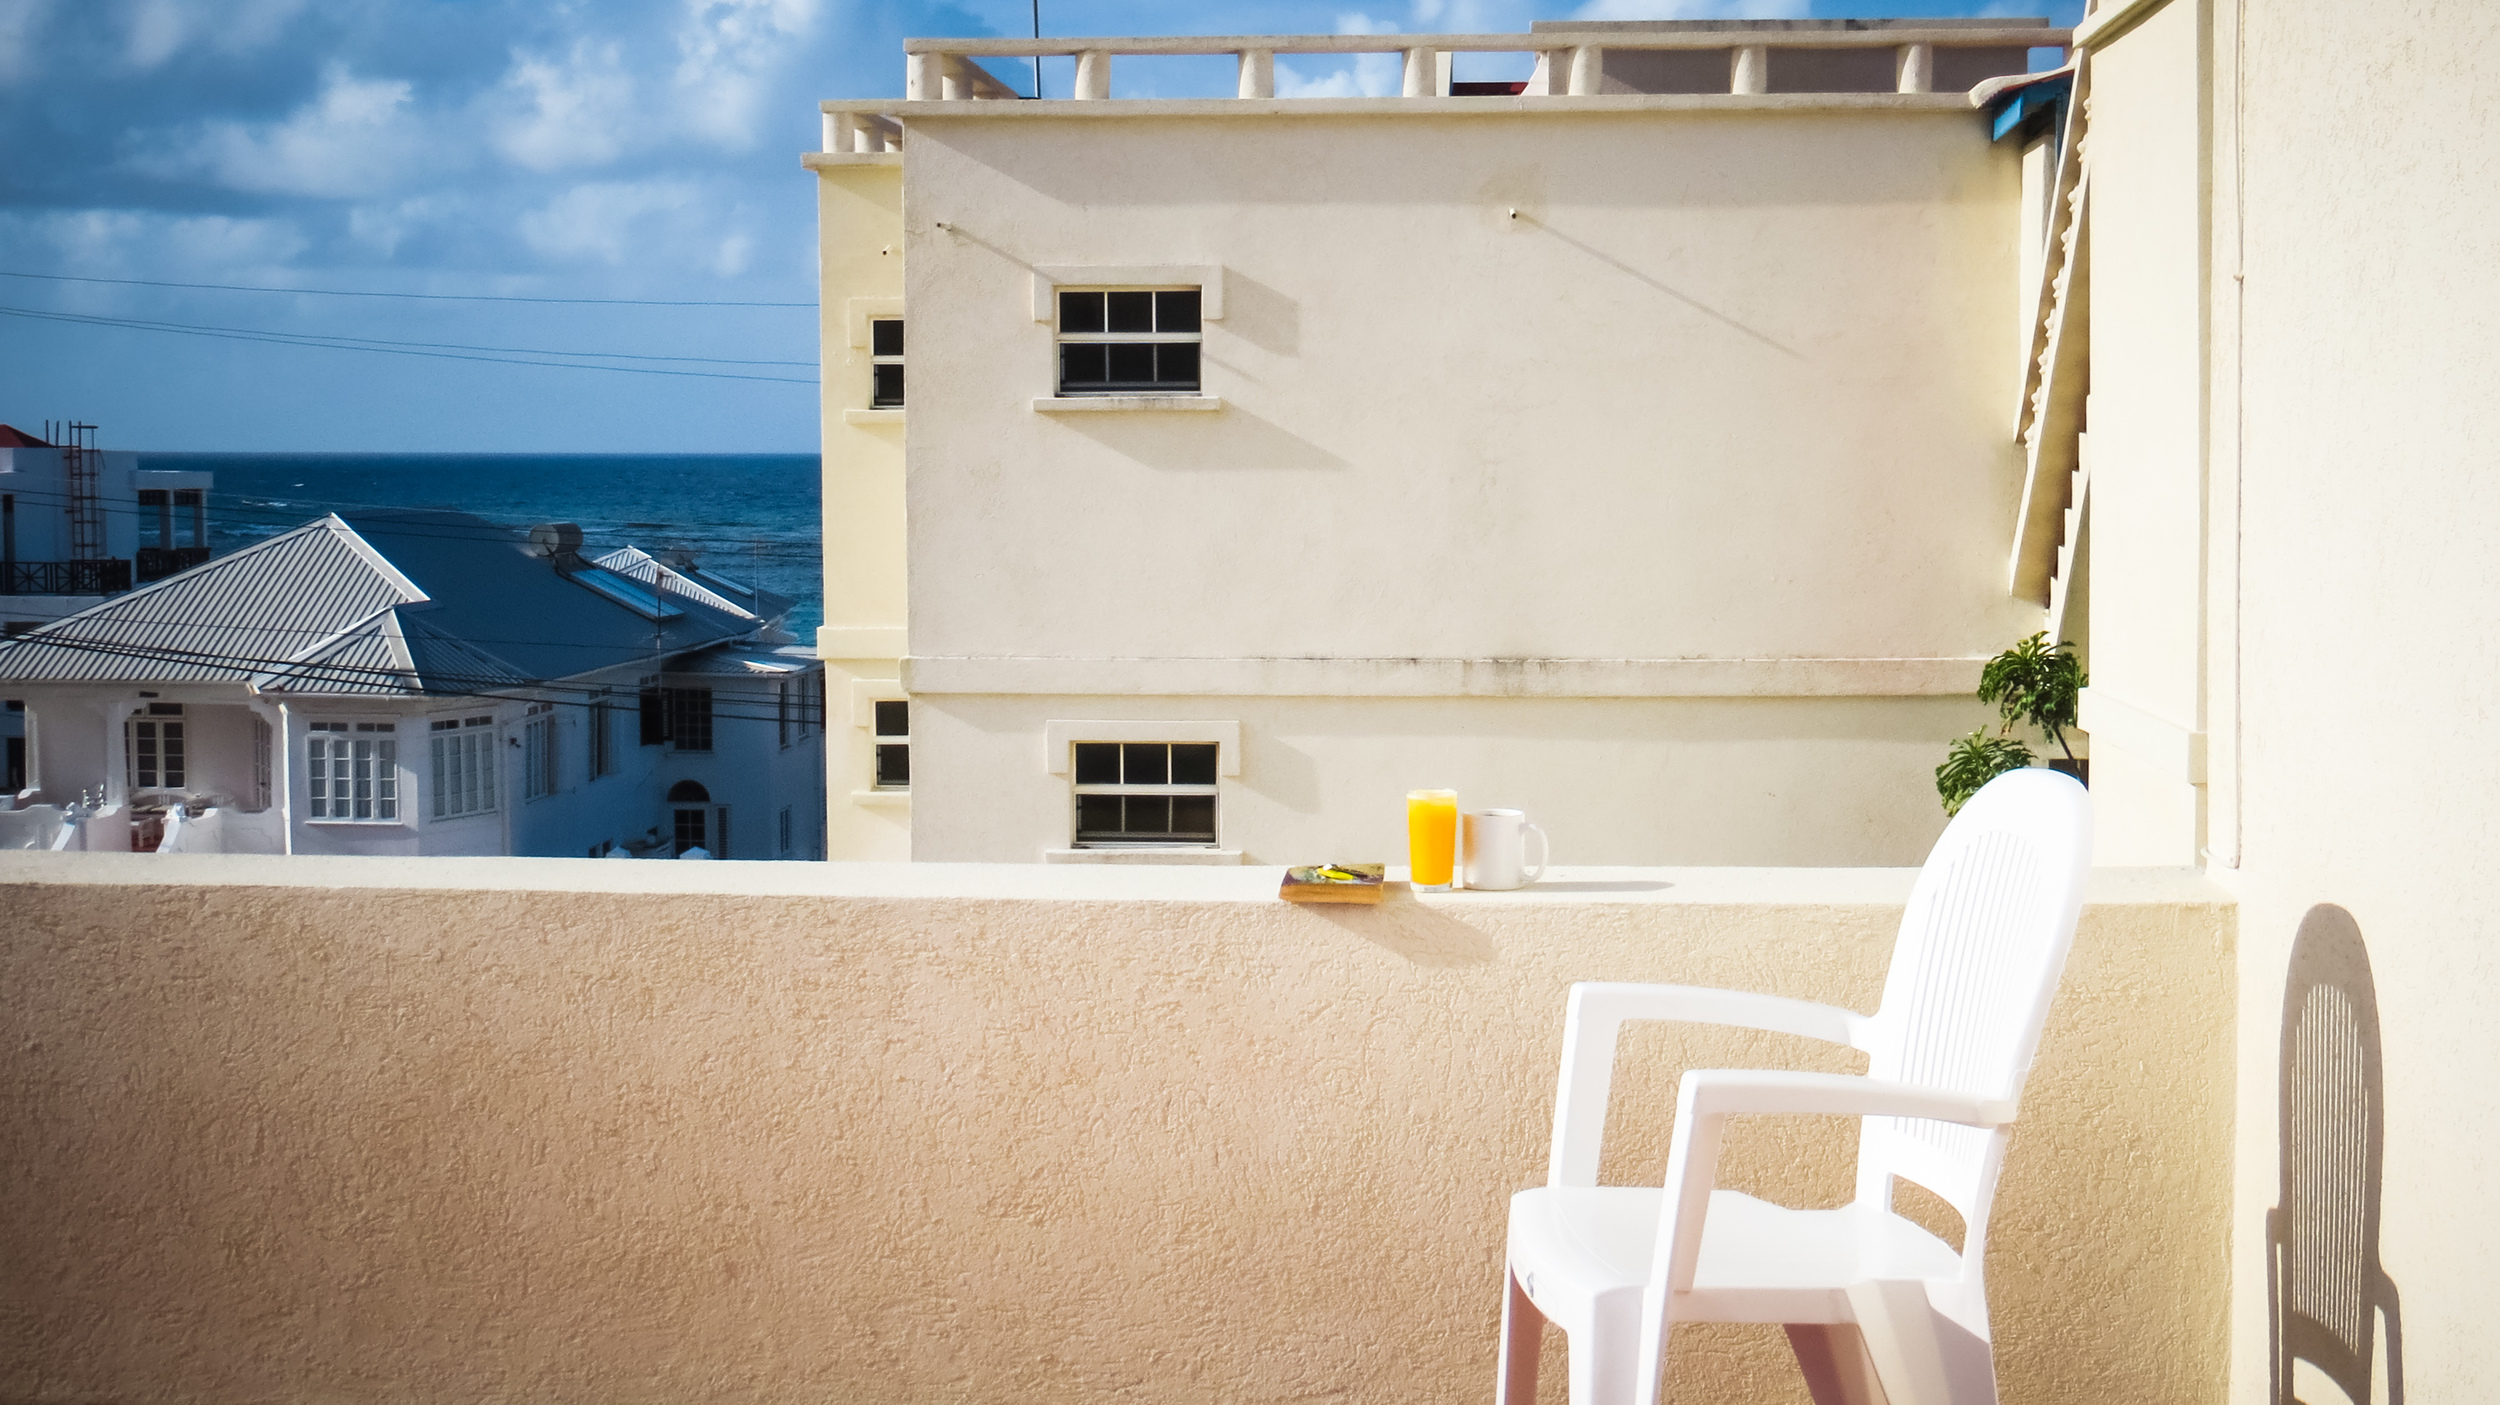 Most mornings I made juice from fresh fruit and sat up here for a morning sun-bathe with my book.